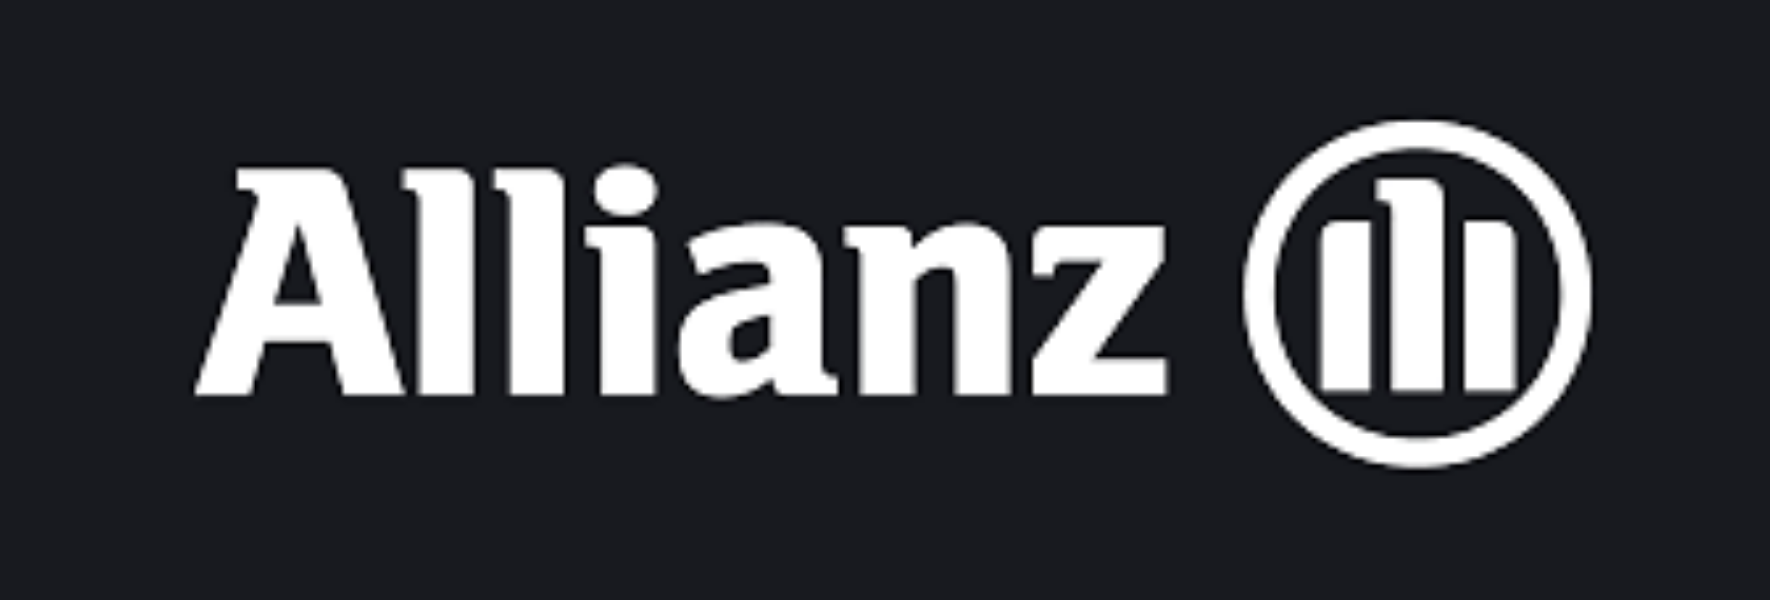 This is the Allianz logo